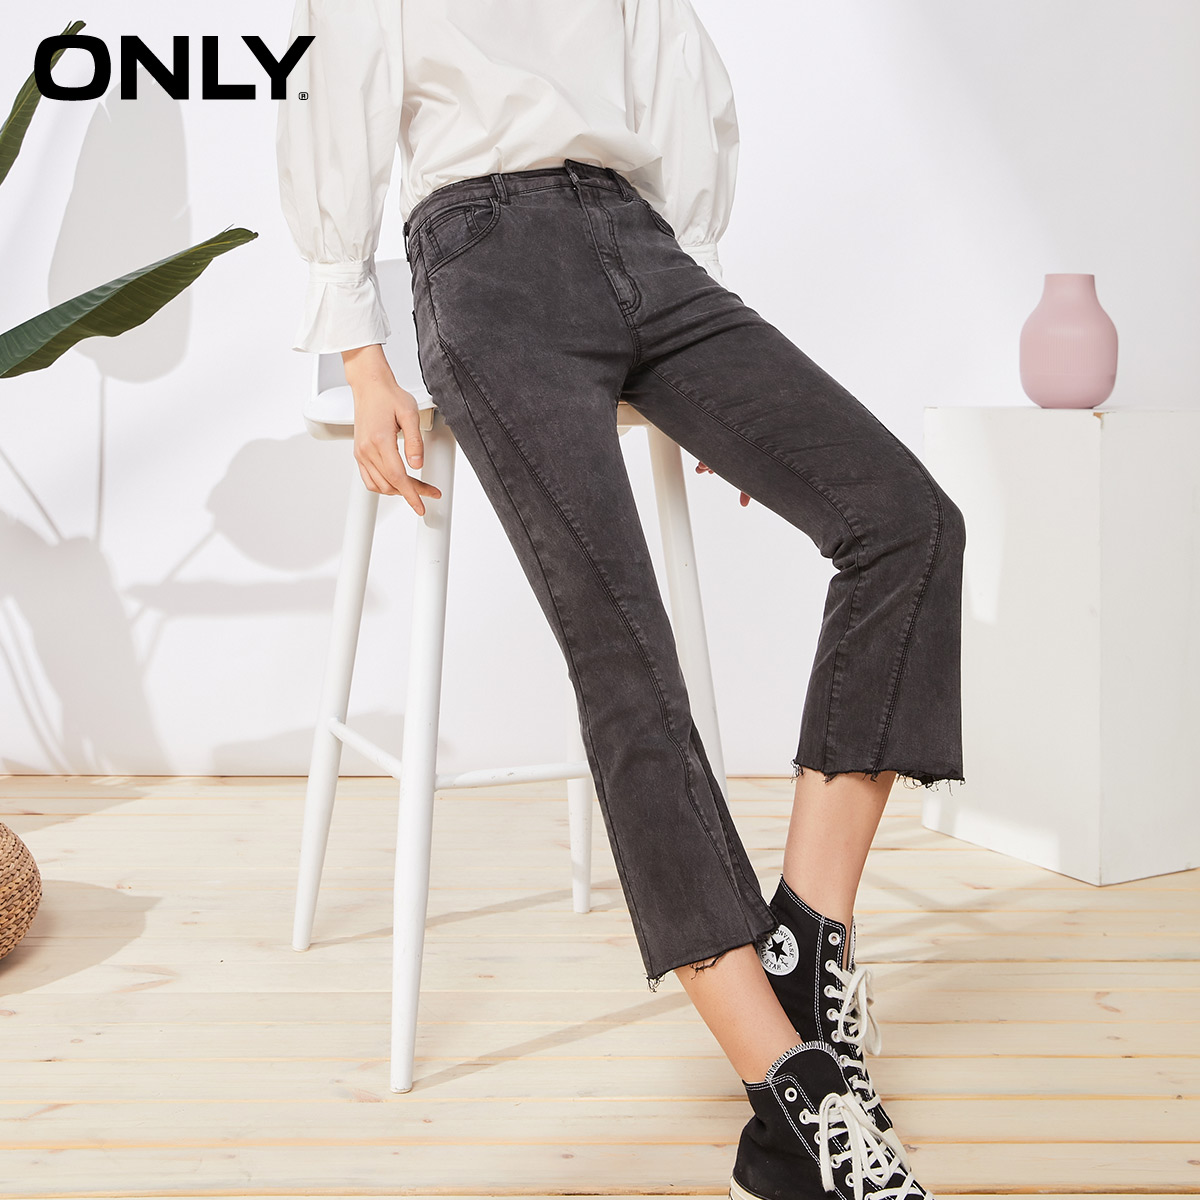 Only2020 summer new single row access control micro La thin casual pants female 120214513